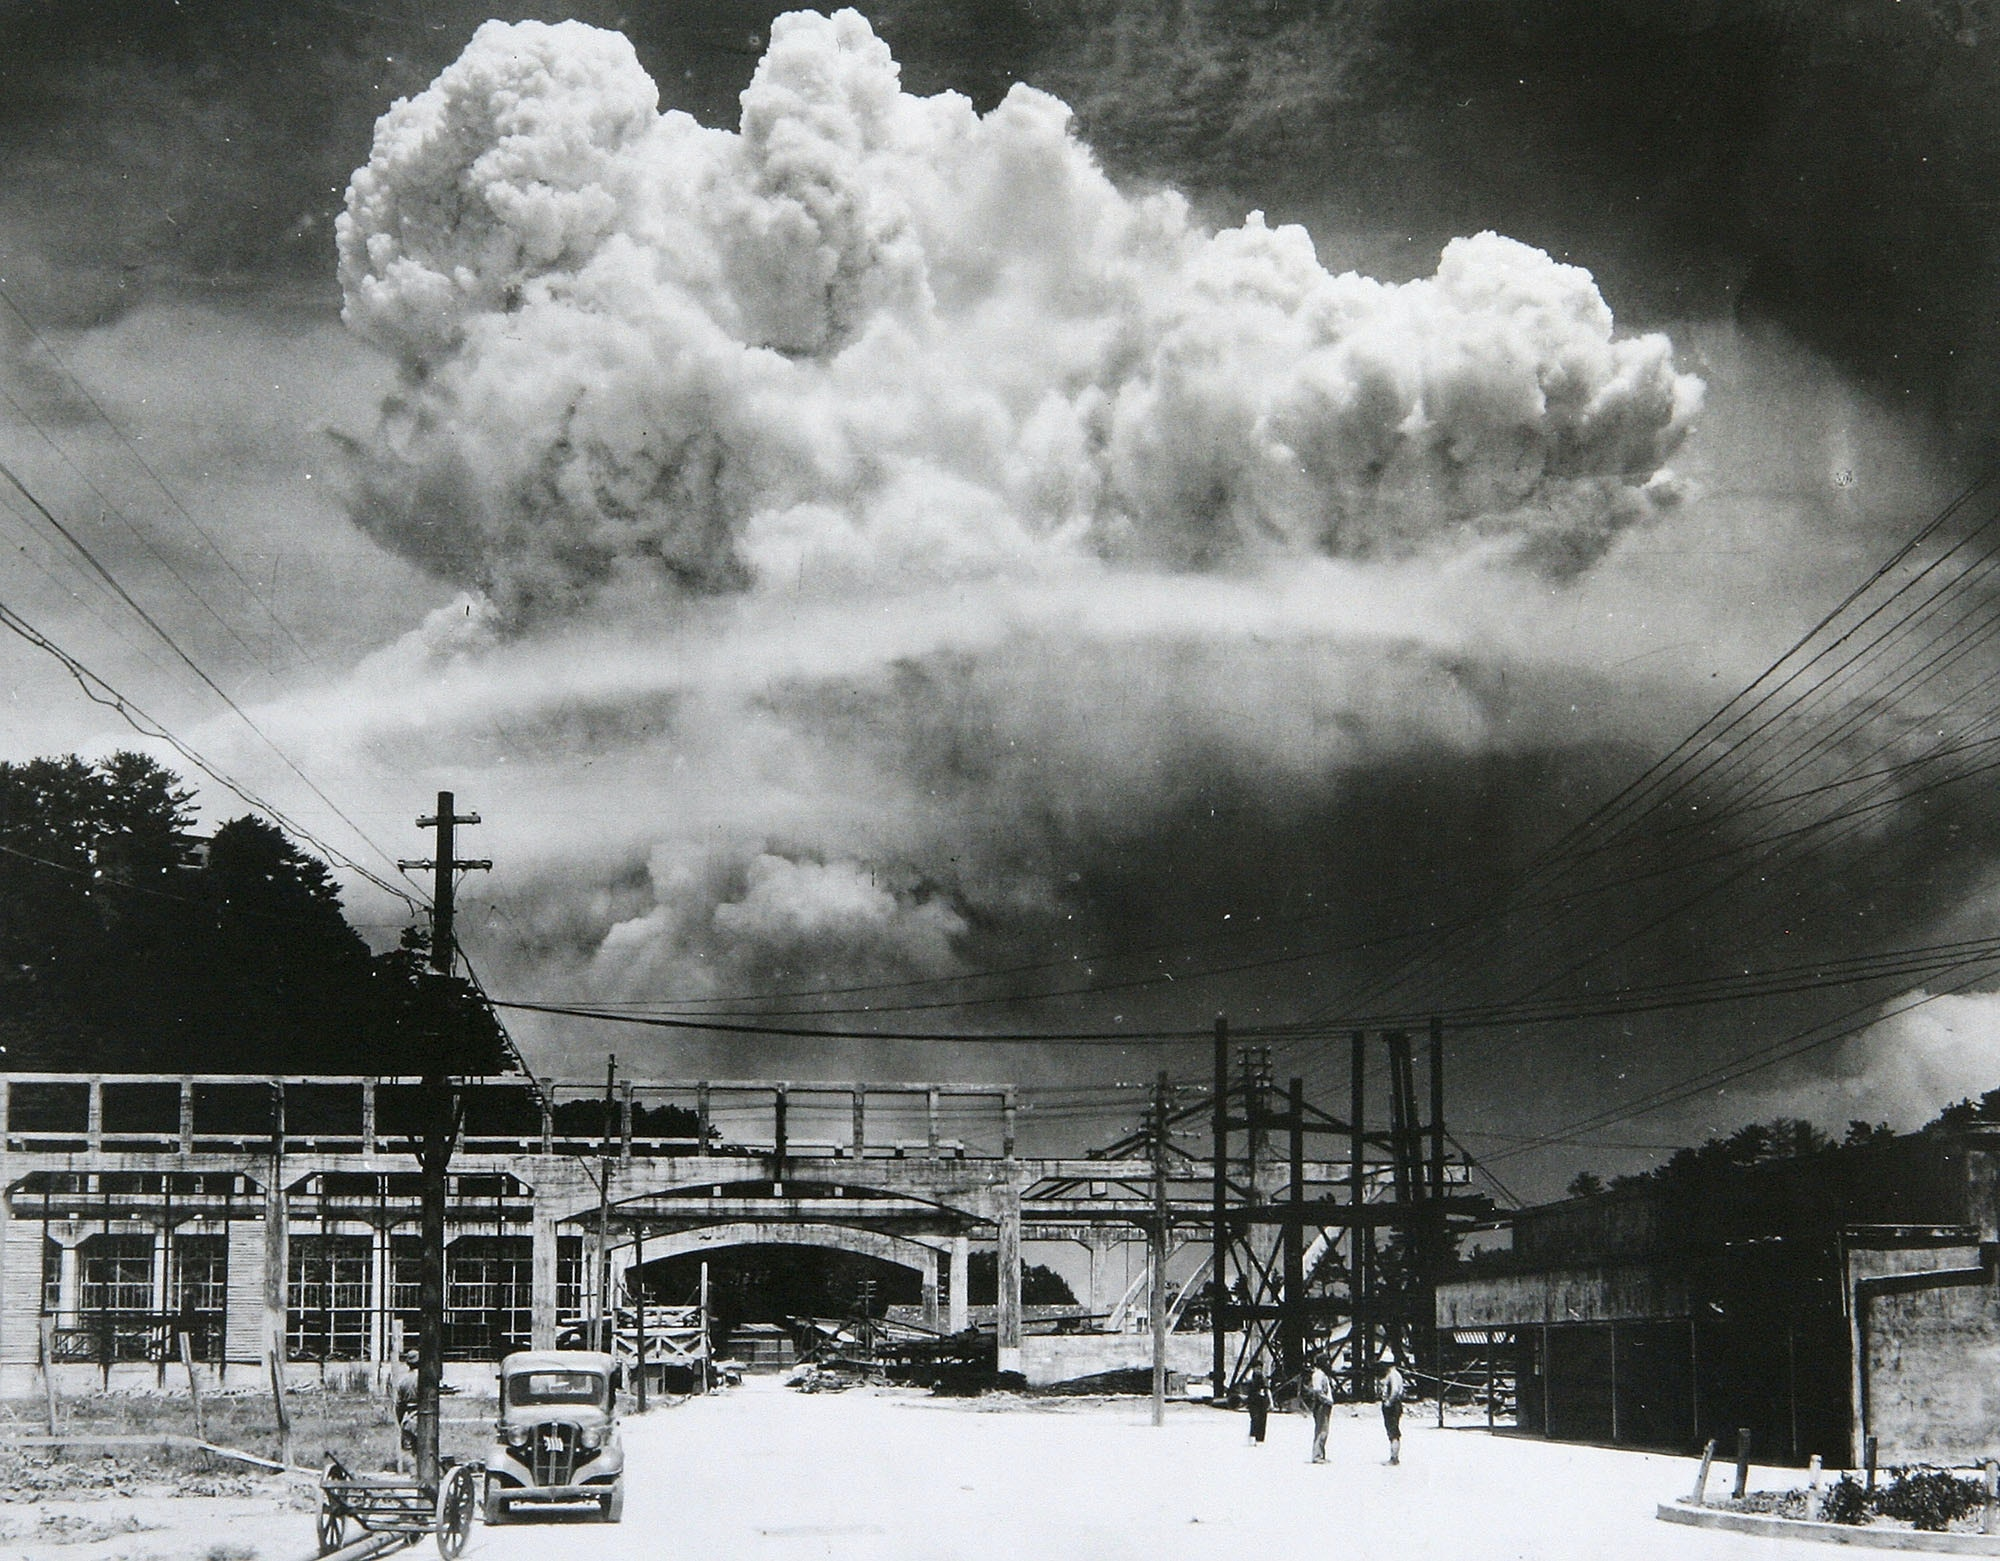 View of the radioactive plume from the bomb dropped on Nagasaki City, as seen from 9.6 km away, in Koyagi-jima, Japan, August 9, 1945. The US B-29 superfortress Bockscar dropped the atomic bomb nicknamed 'Fat Man,' which detonated above the ground, on northern part of Nagasaki City just after 11am. (Photo by Hiromichi Matsuda/Handout from Nagasaki Atomic Bomb Museum/Getty Images)